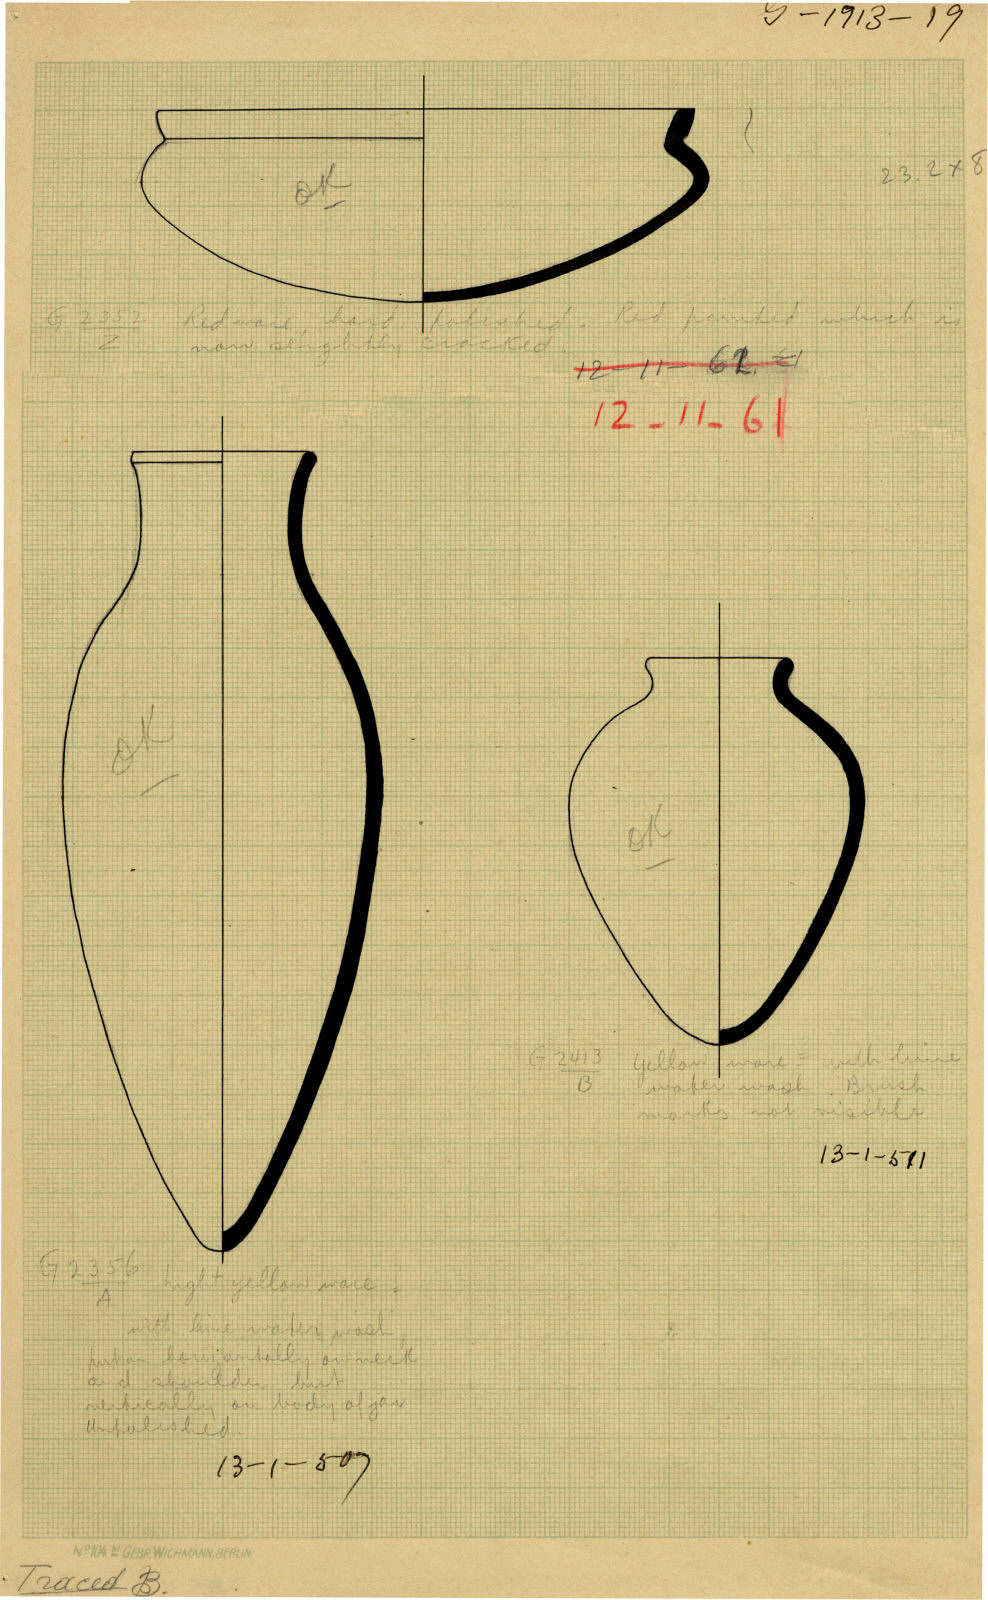 Drawings: Pottery from G 2352, G 2356, Shaft A, G 2413, Shaft B